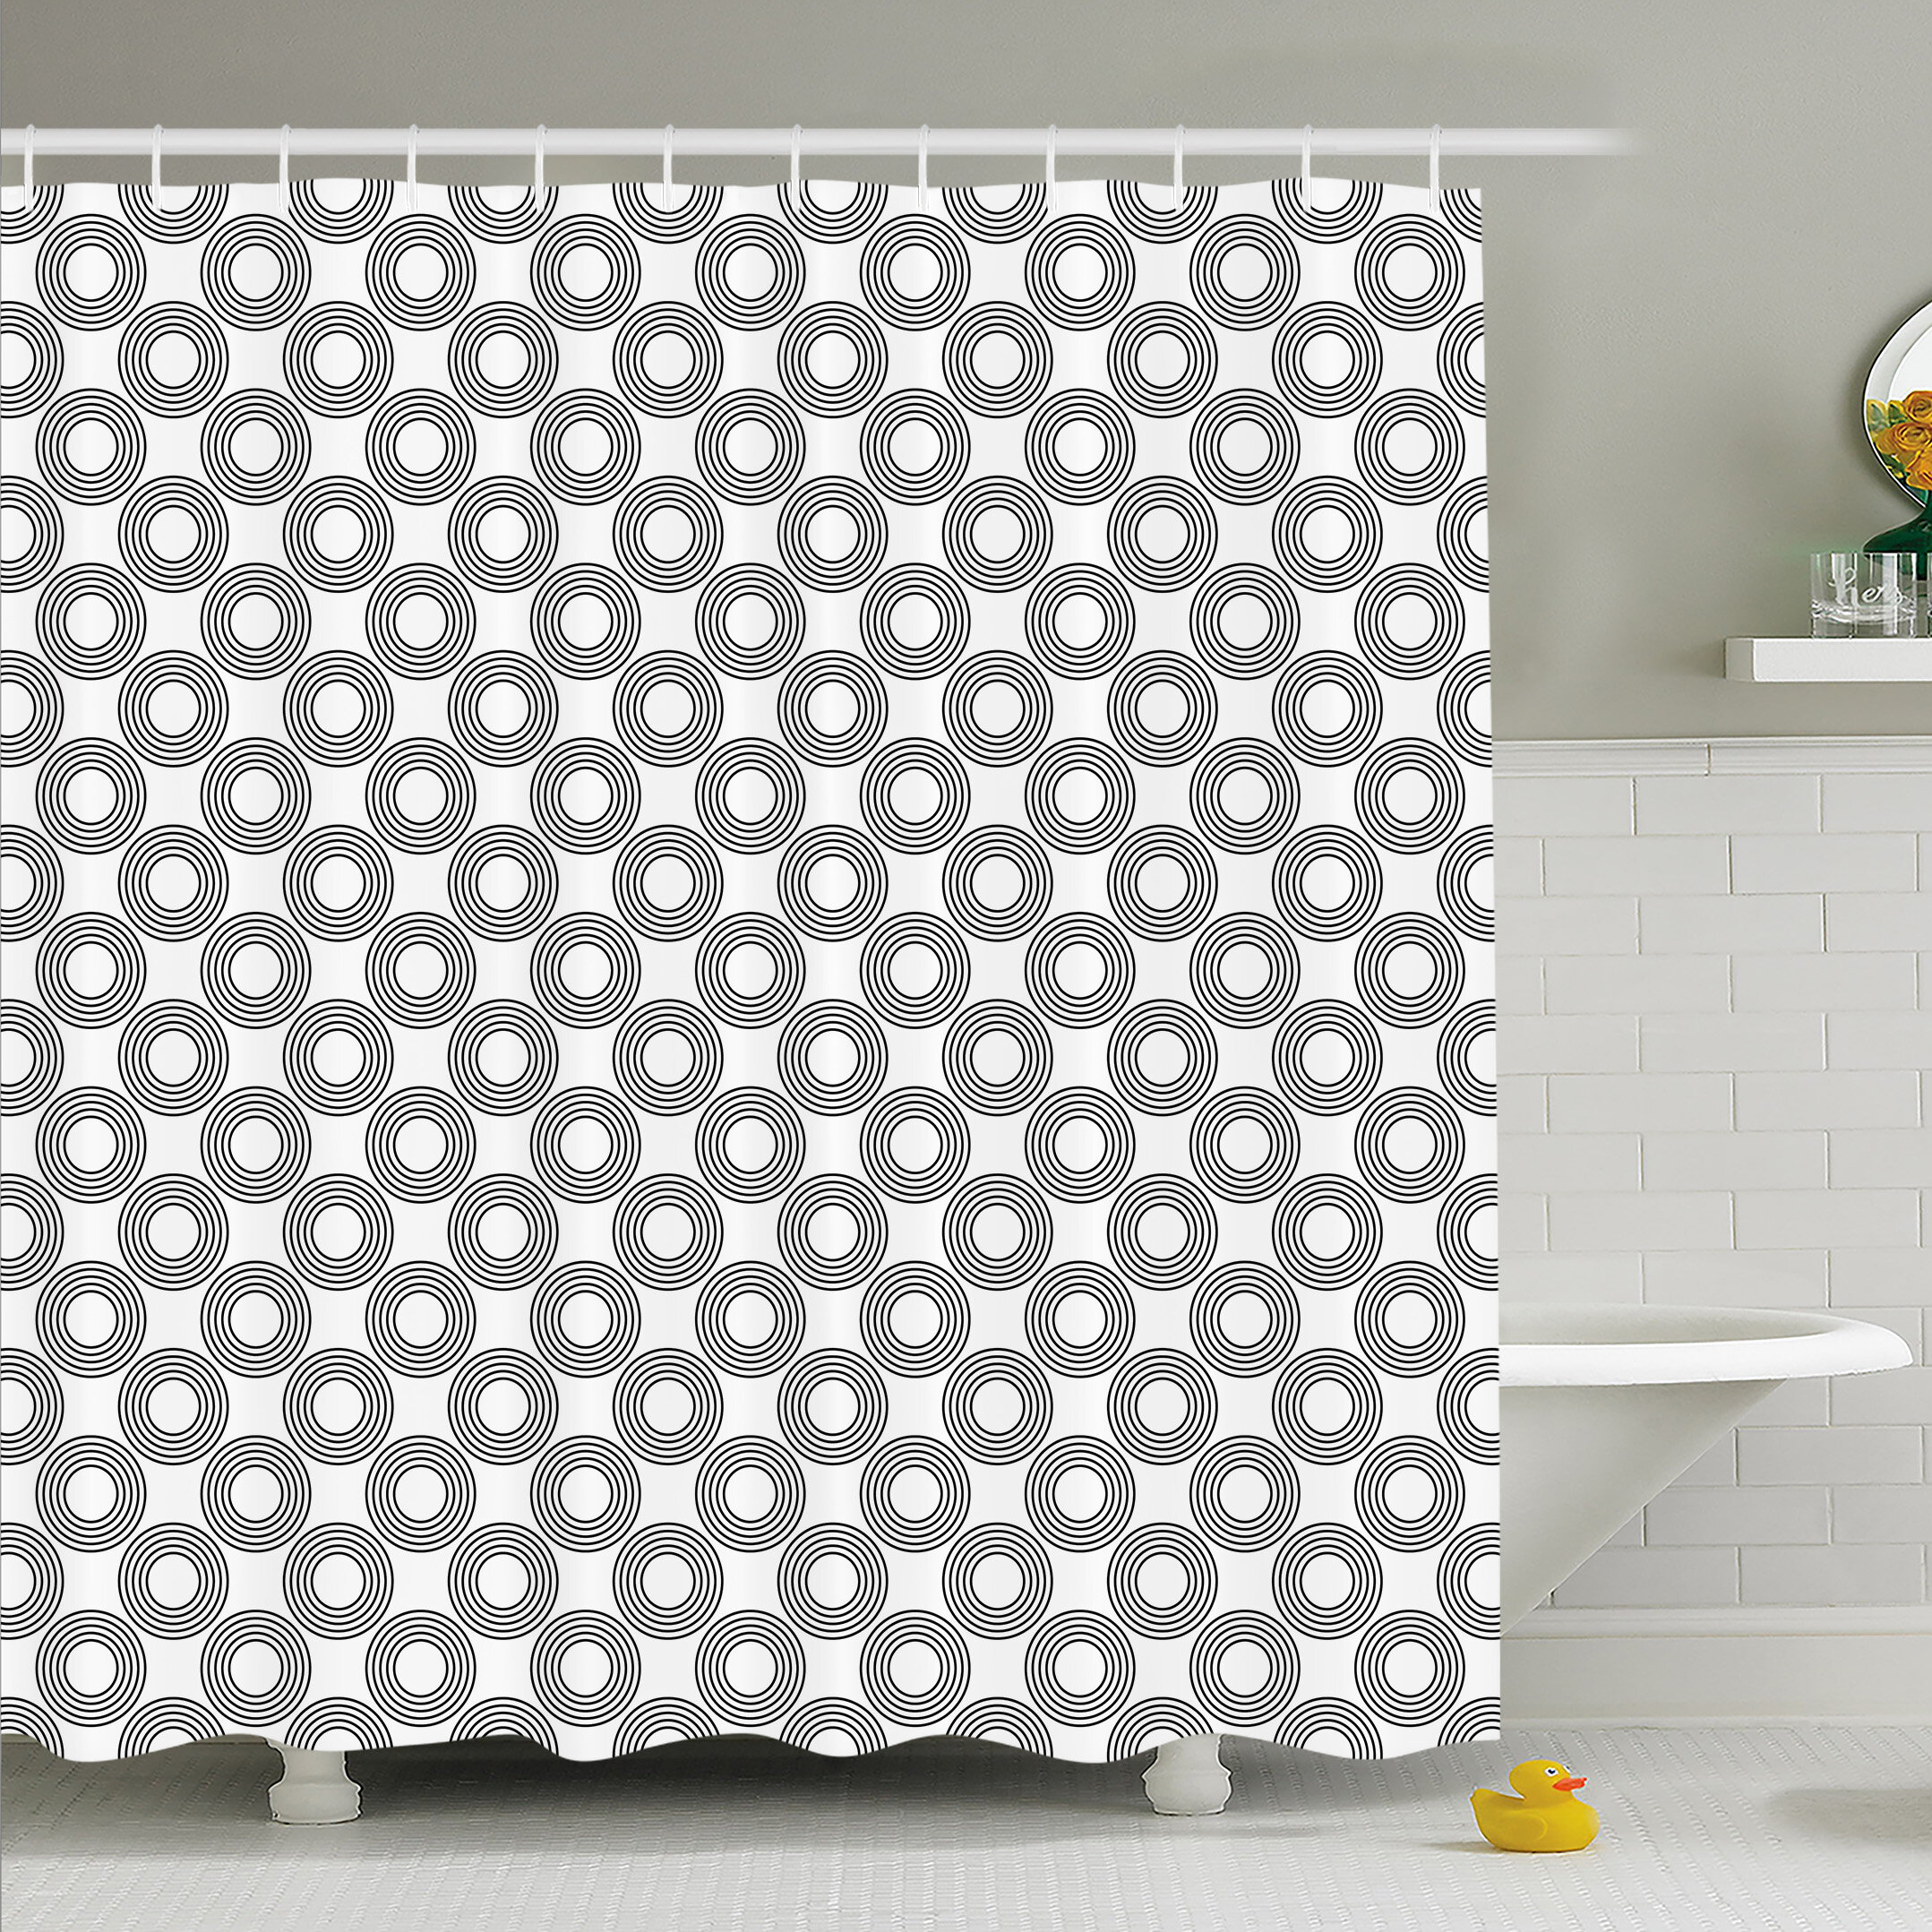 Ambesonne Geometric Circle Vinyl Records Inspired Concentric Rings With Curve Grids Shower Curtain Set Wayfair